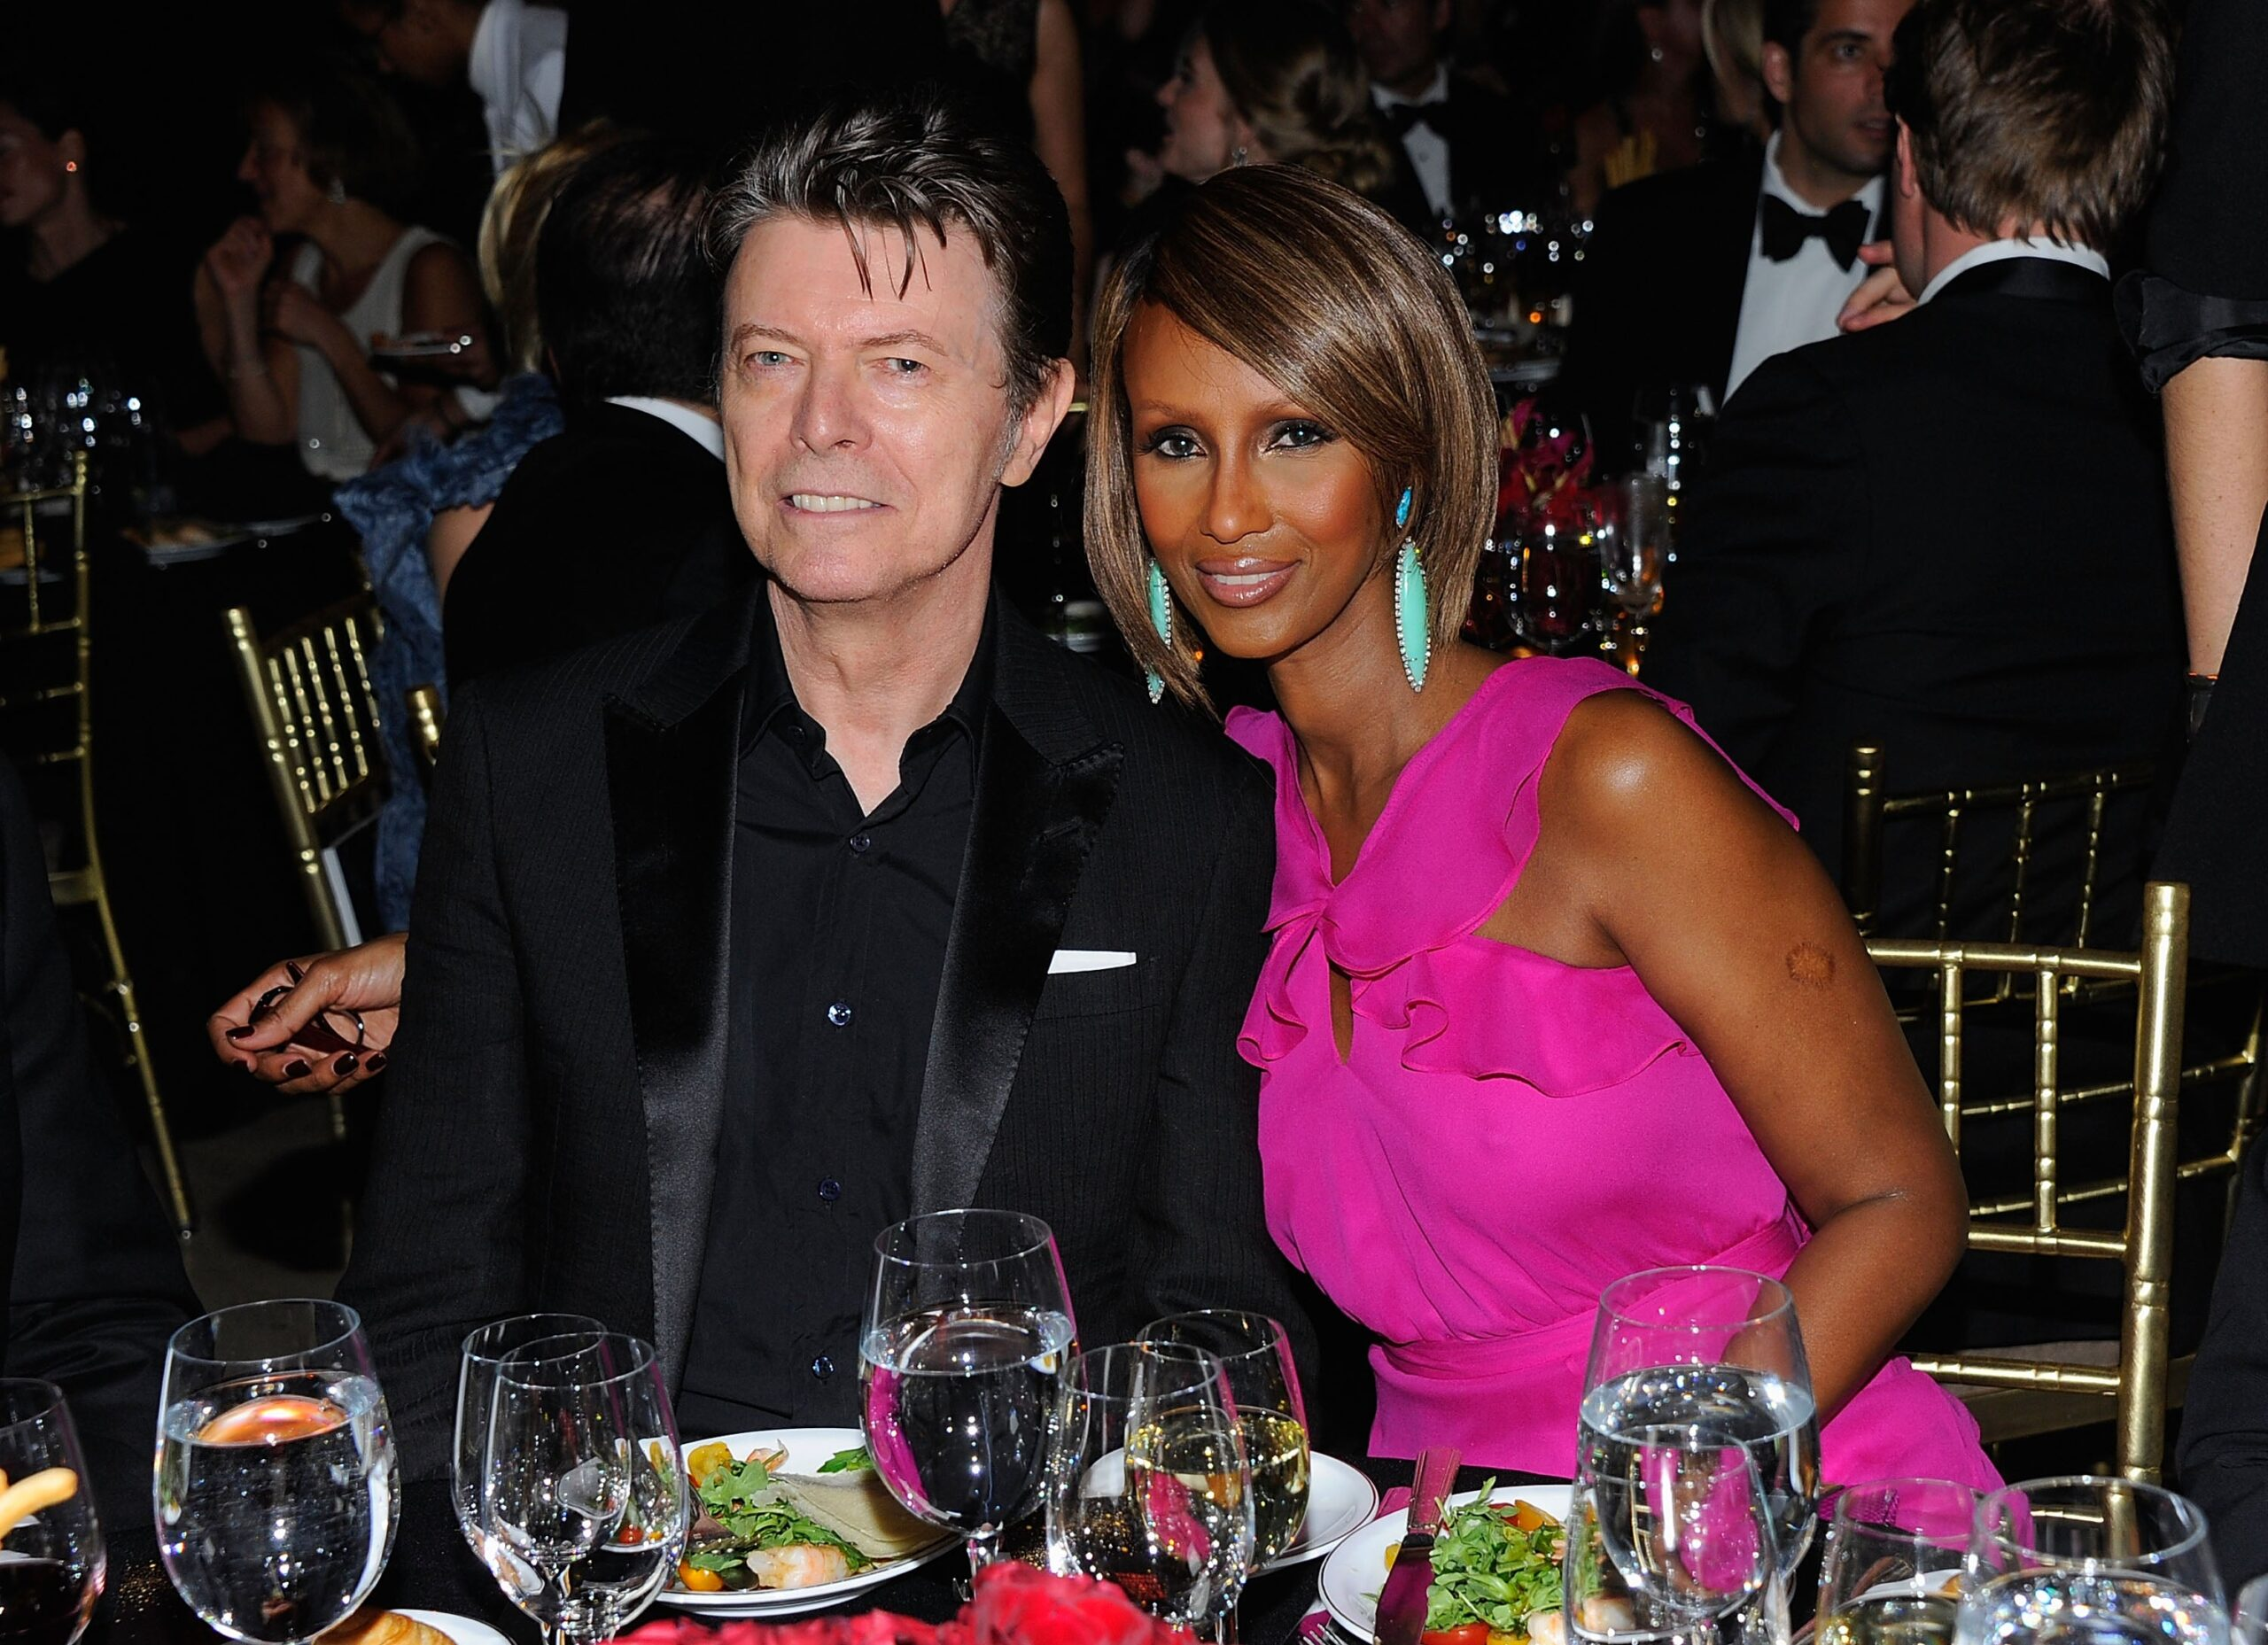 'I wish we had had more years': David Bowie's wife Iman says she'll 'never' marry again